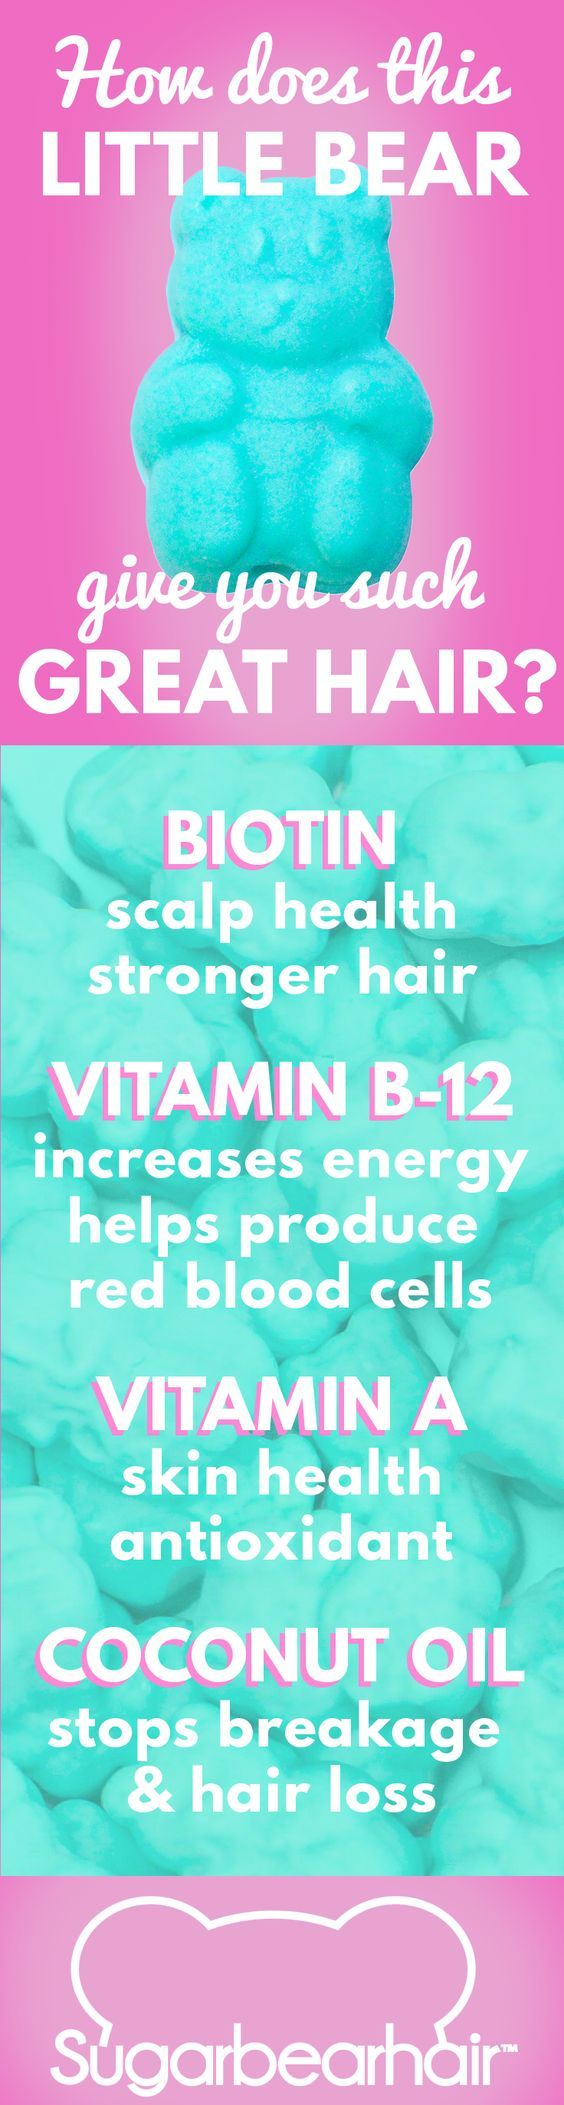 In What Foods Can U Find Biotin